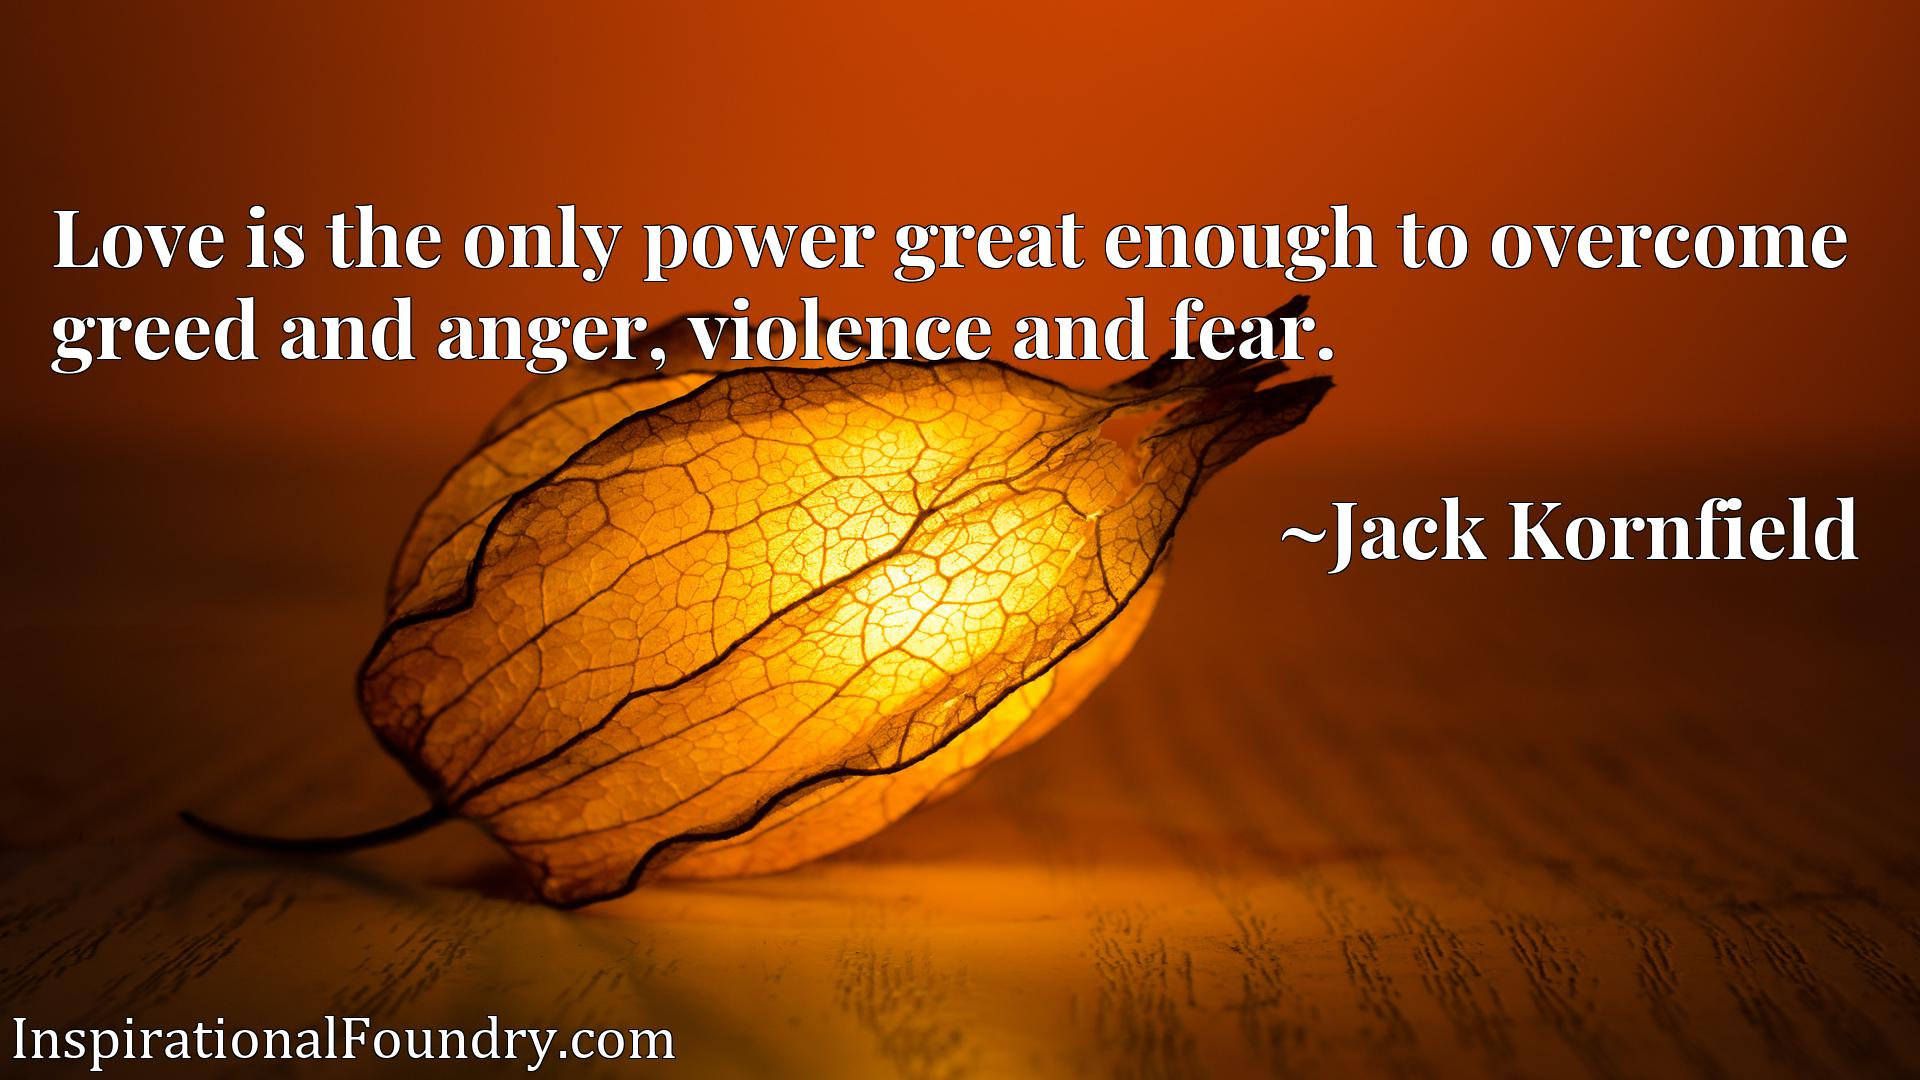 Love is the only power great enough to overcome greed and anger, violence and fear.